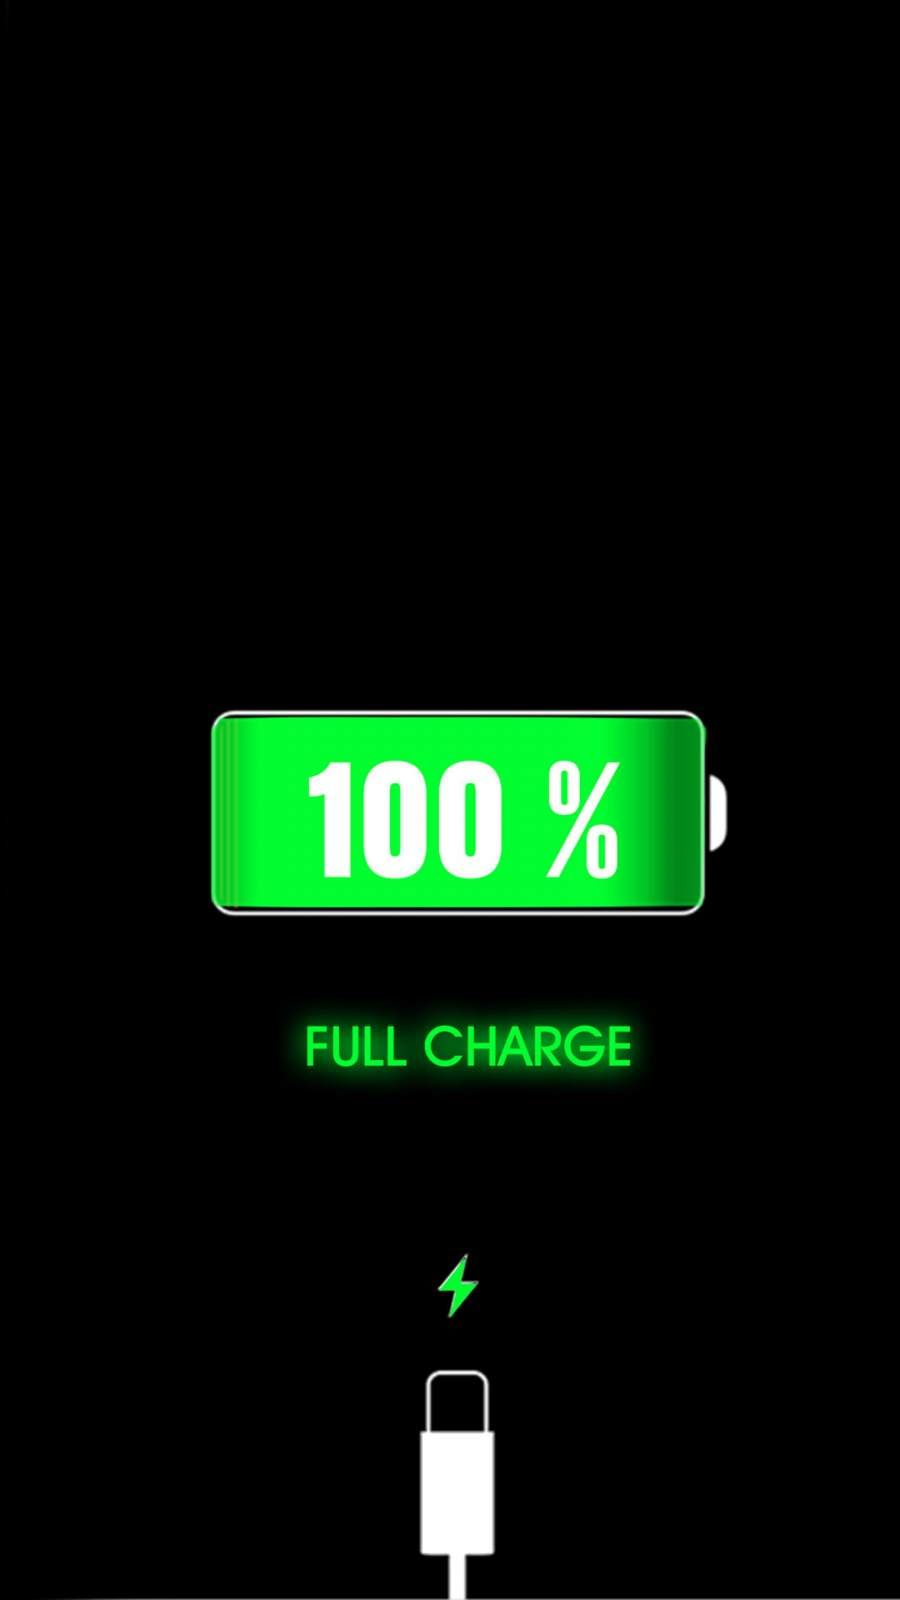 Full Charge Iphone Wallpaper Iphone Wallpaper Iphone Wallpaper Images Wallpaper Iphone Cute